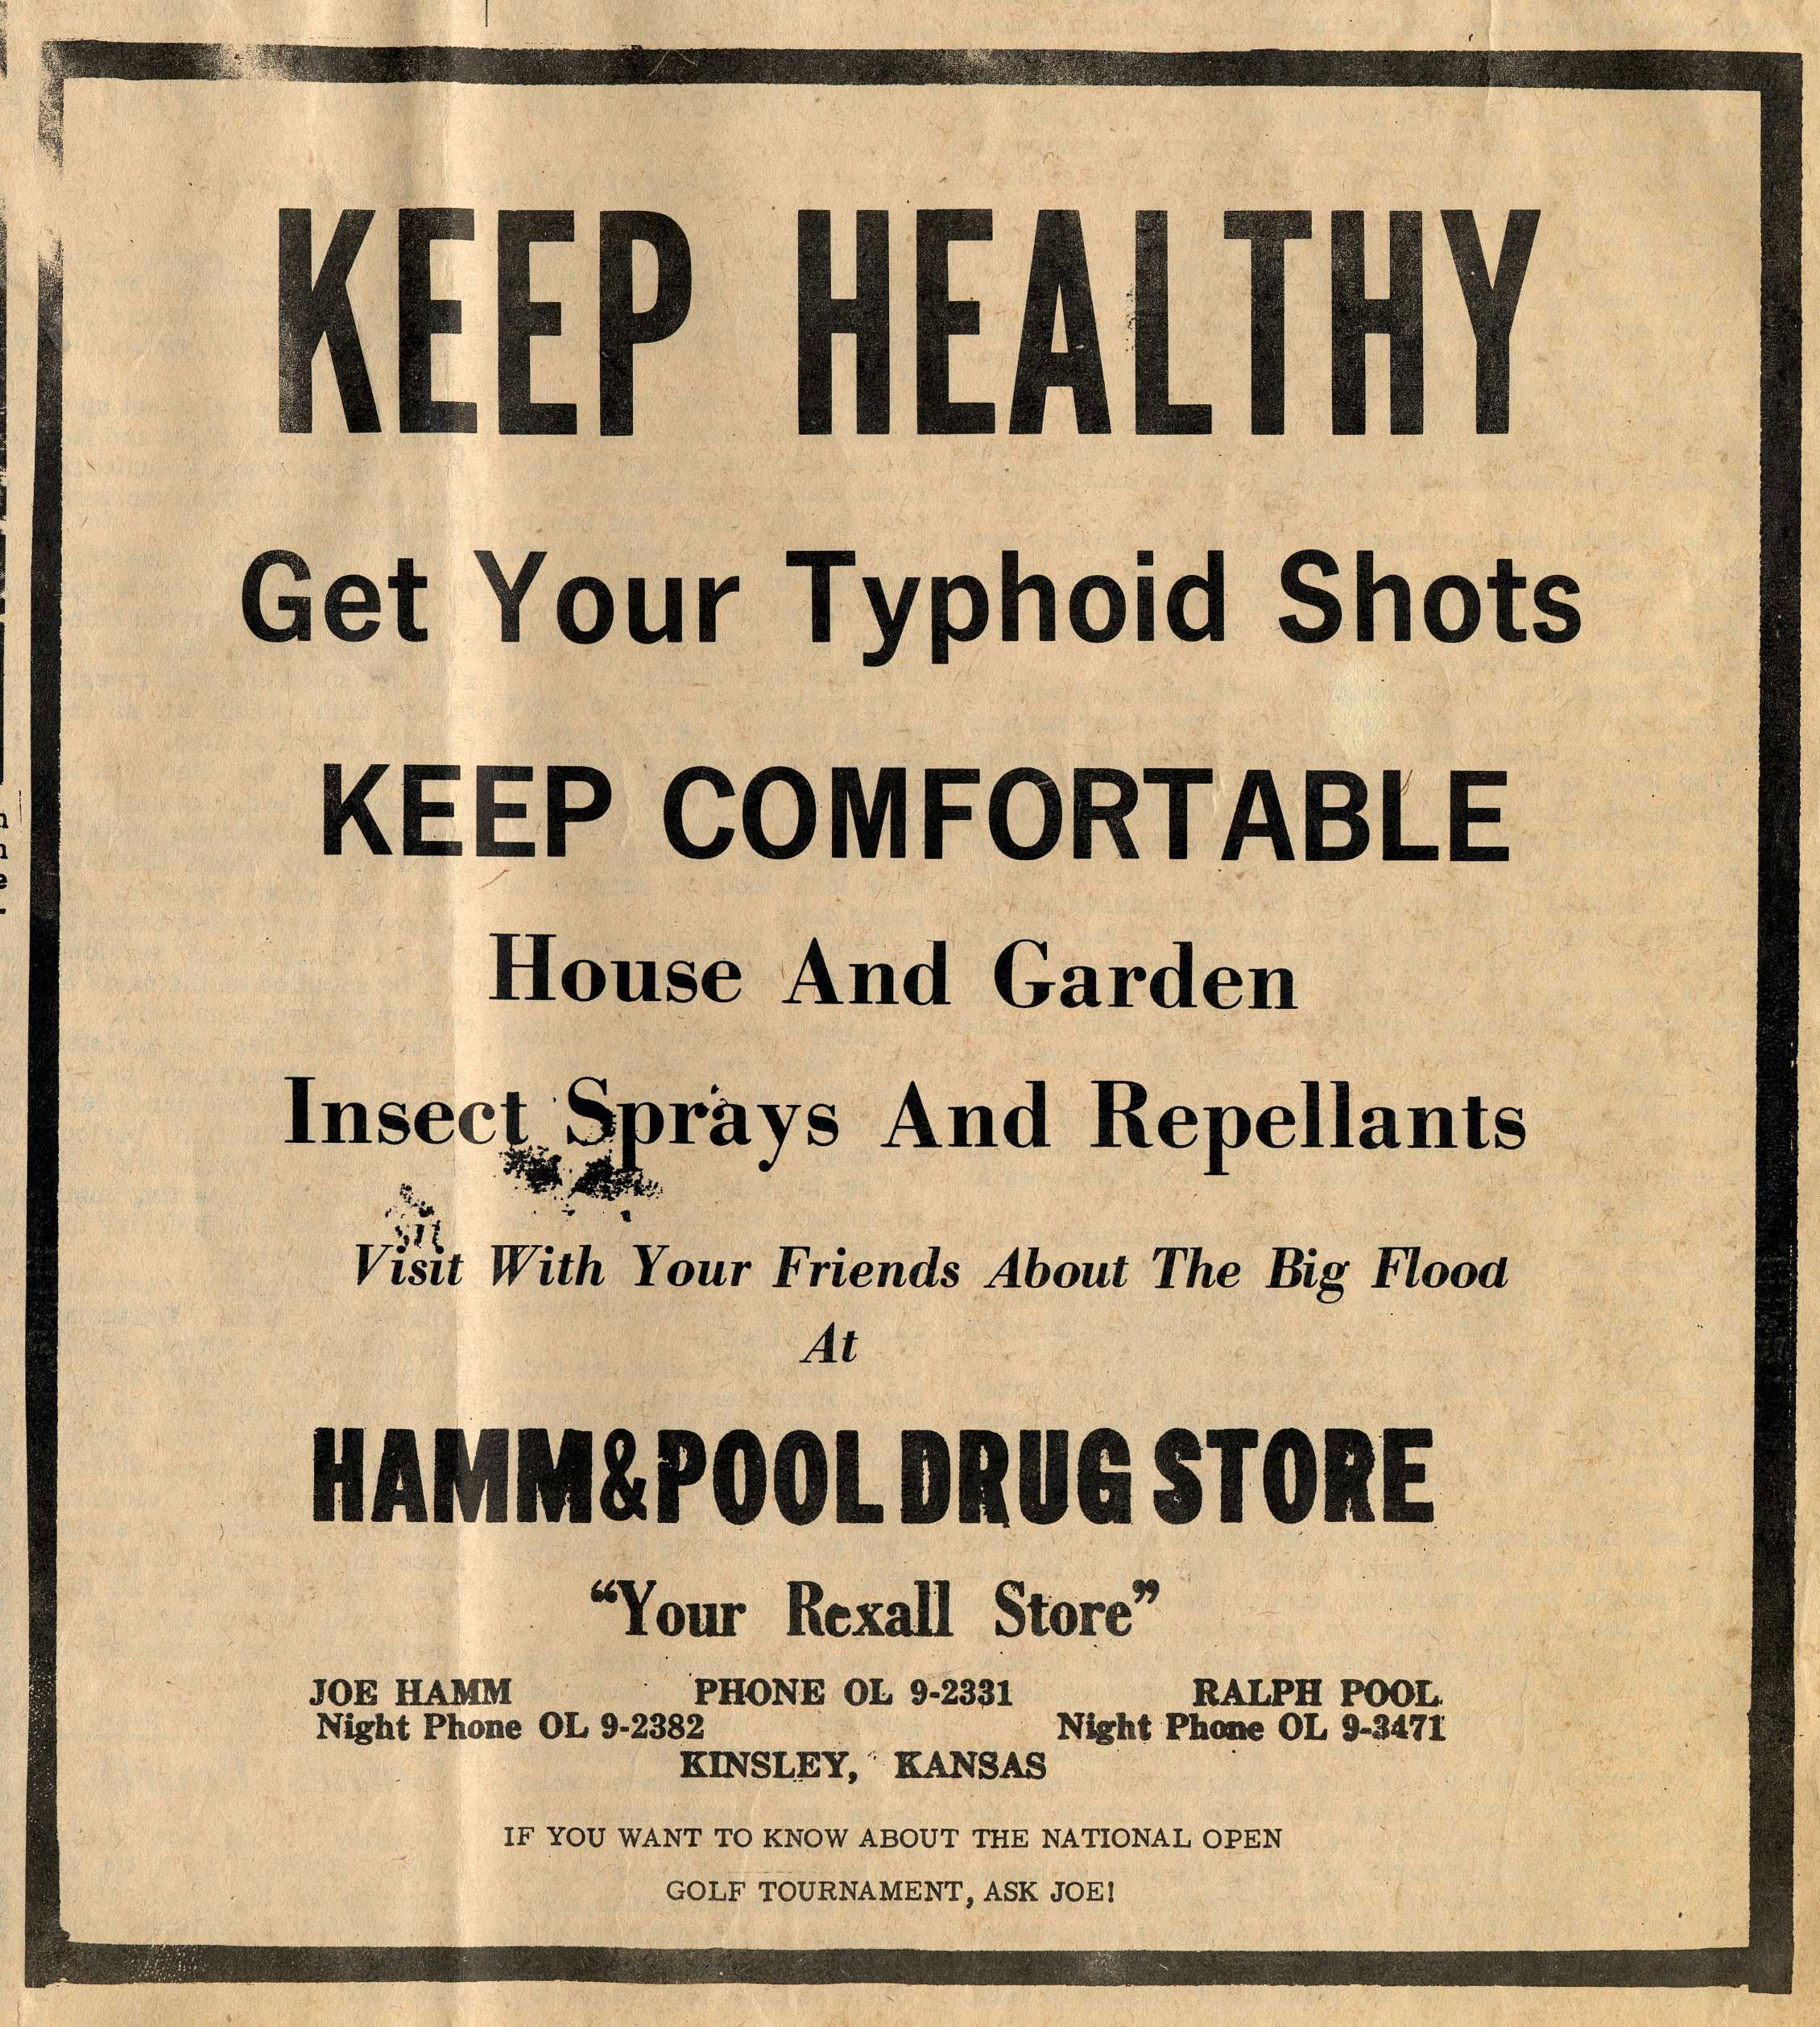 1965 Drug Store Ad encouraging Typhoid Shots